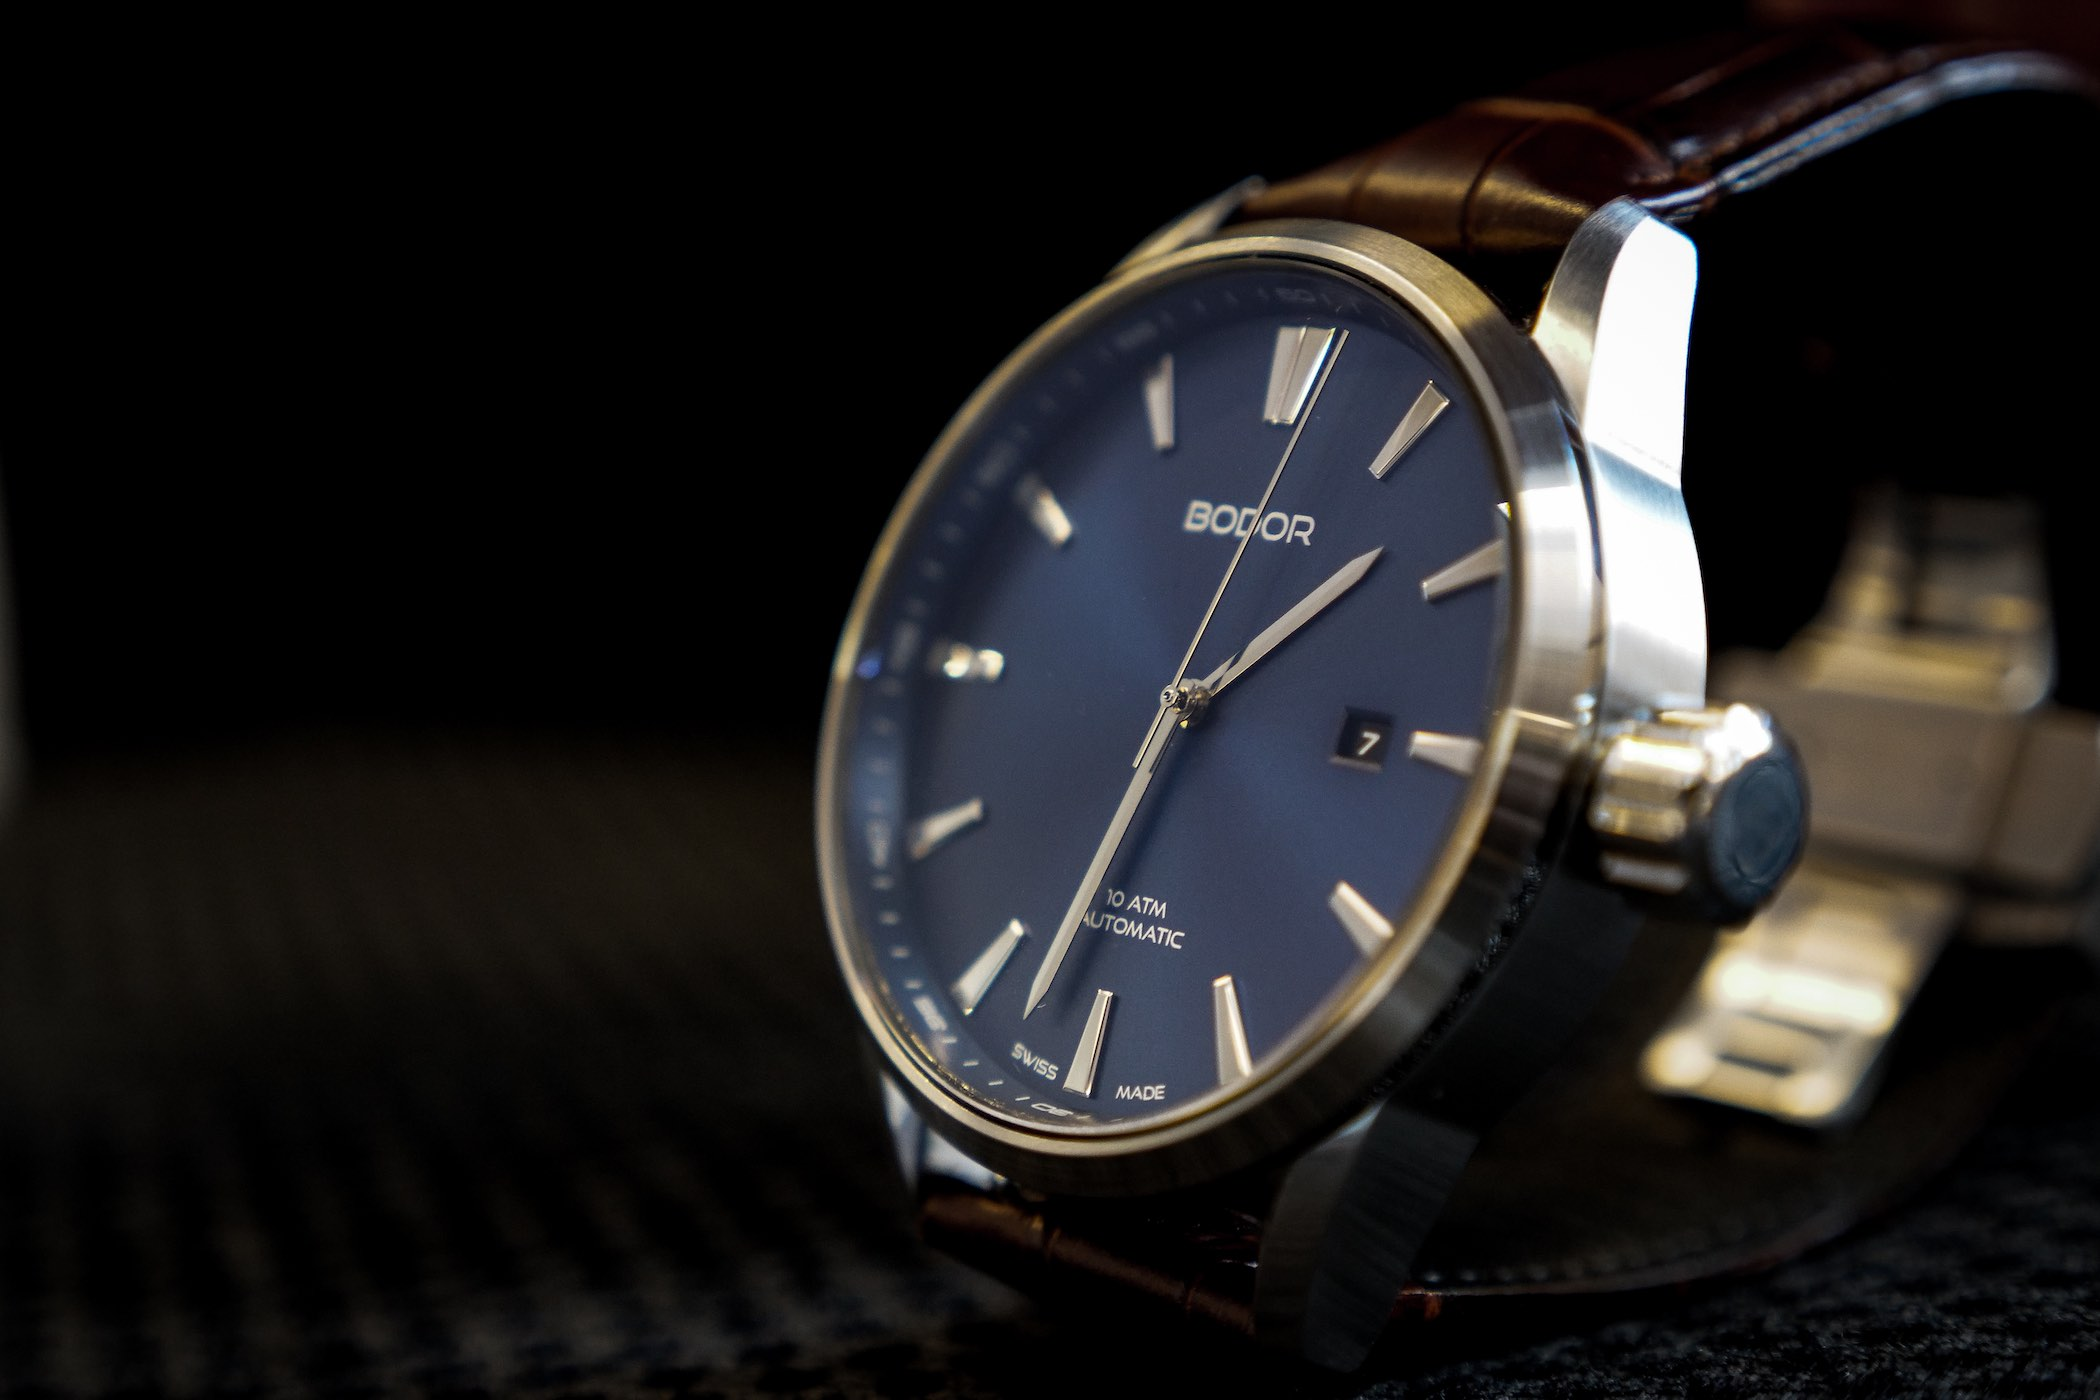 Bodor Watches Business Edition Kickstarter - Value Proposition